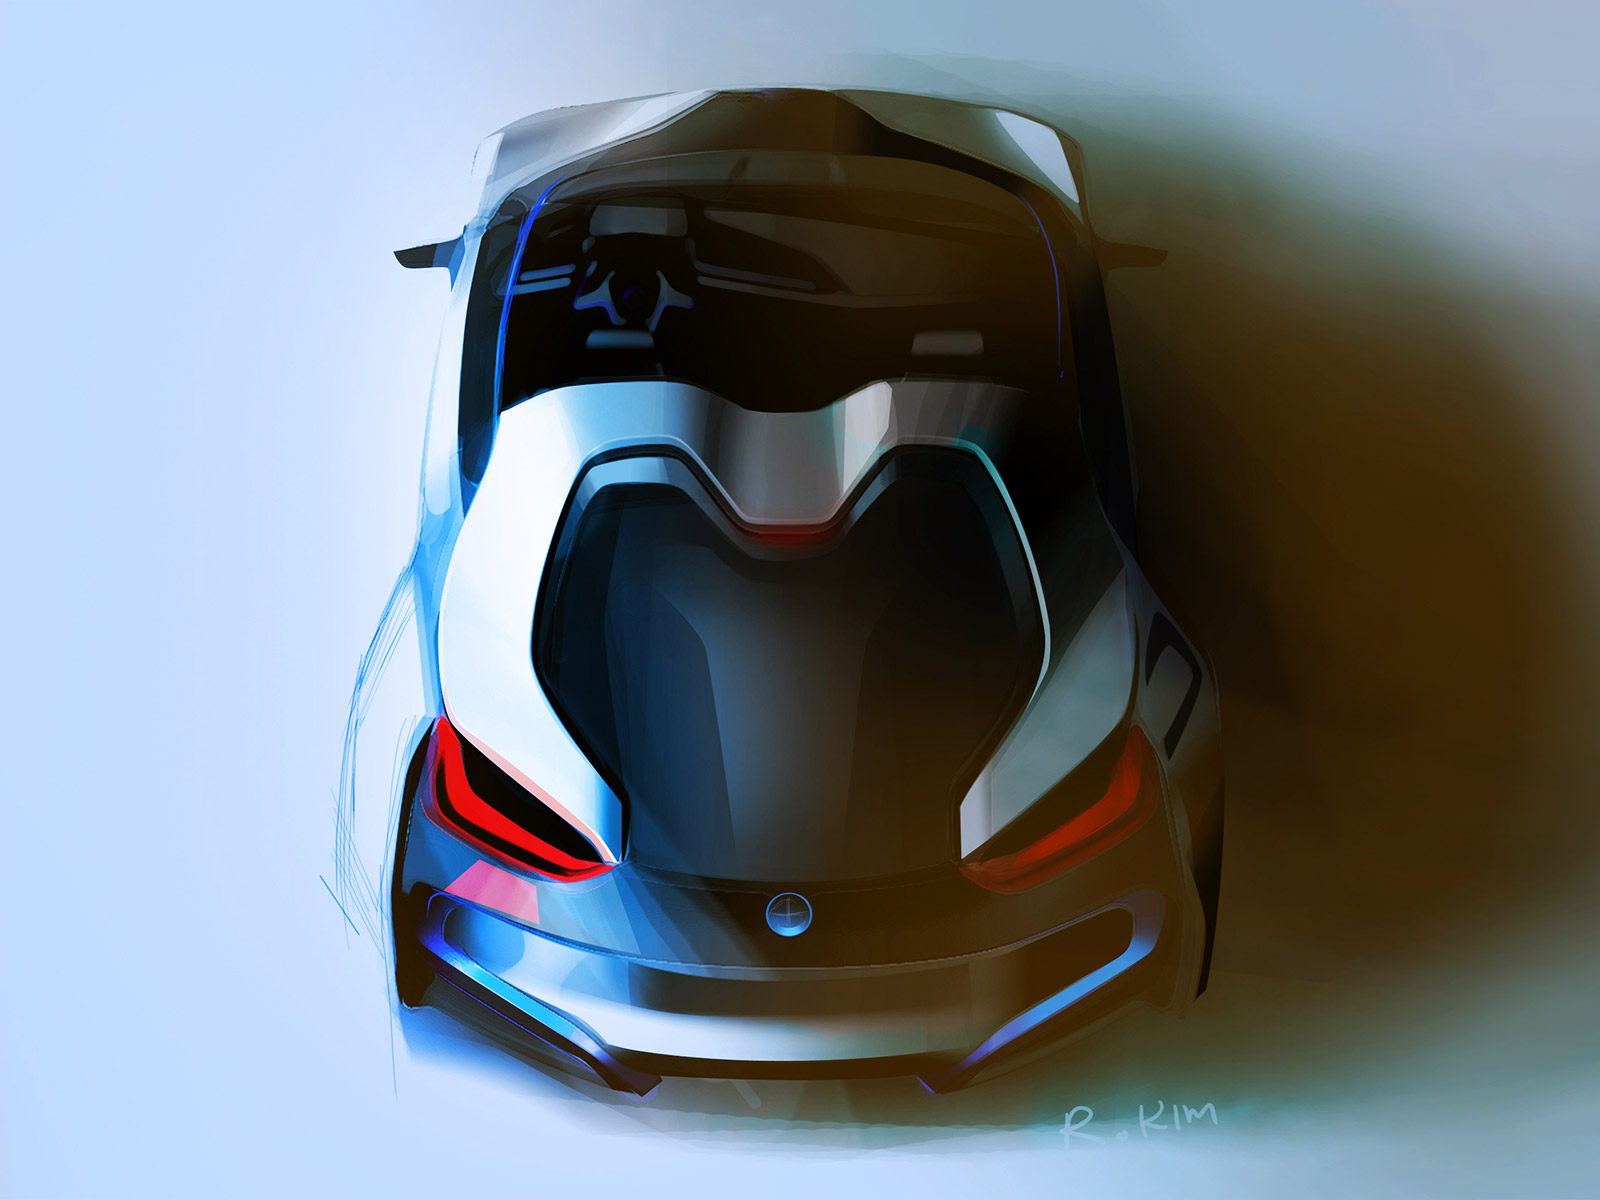 BMW i8 Concept Spyder - Design Sketch